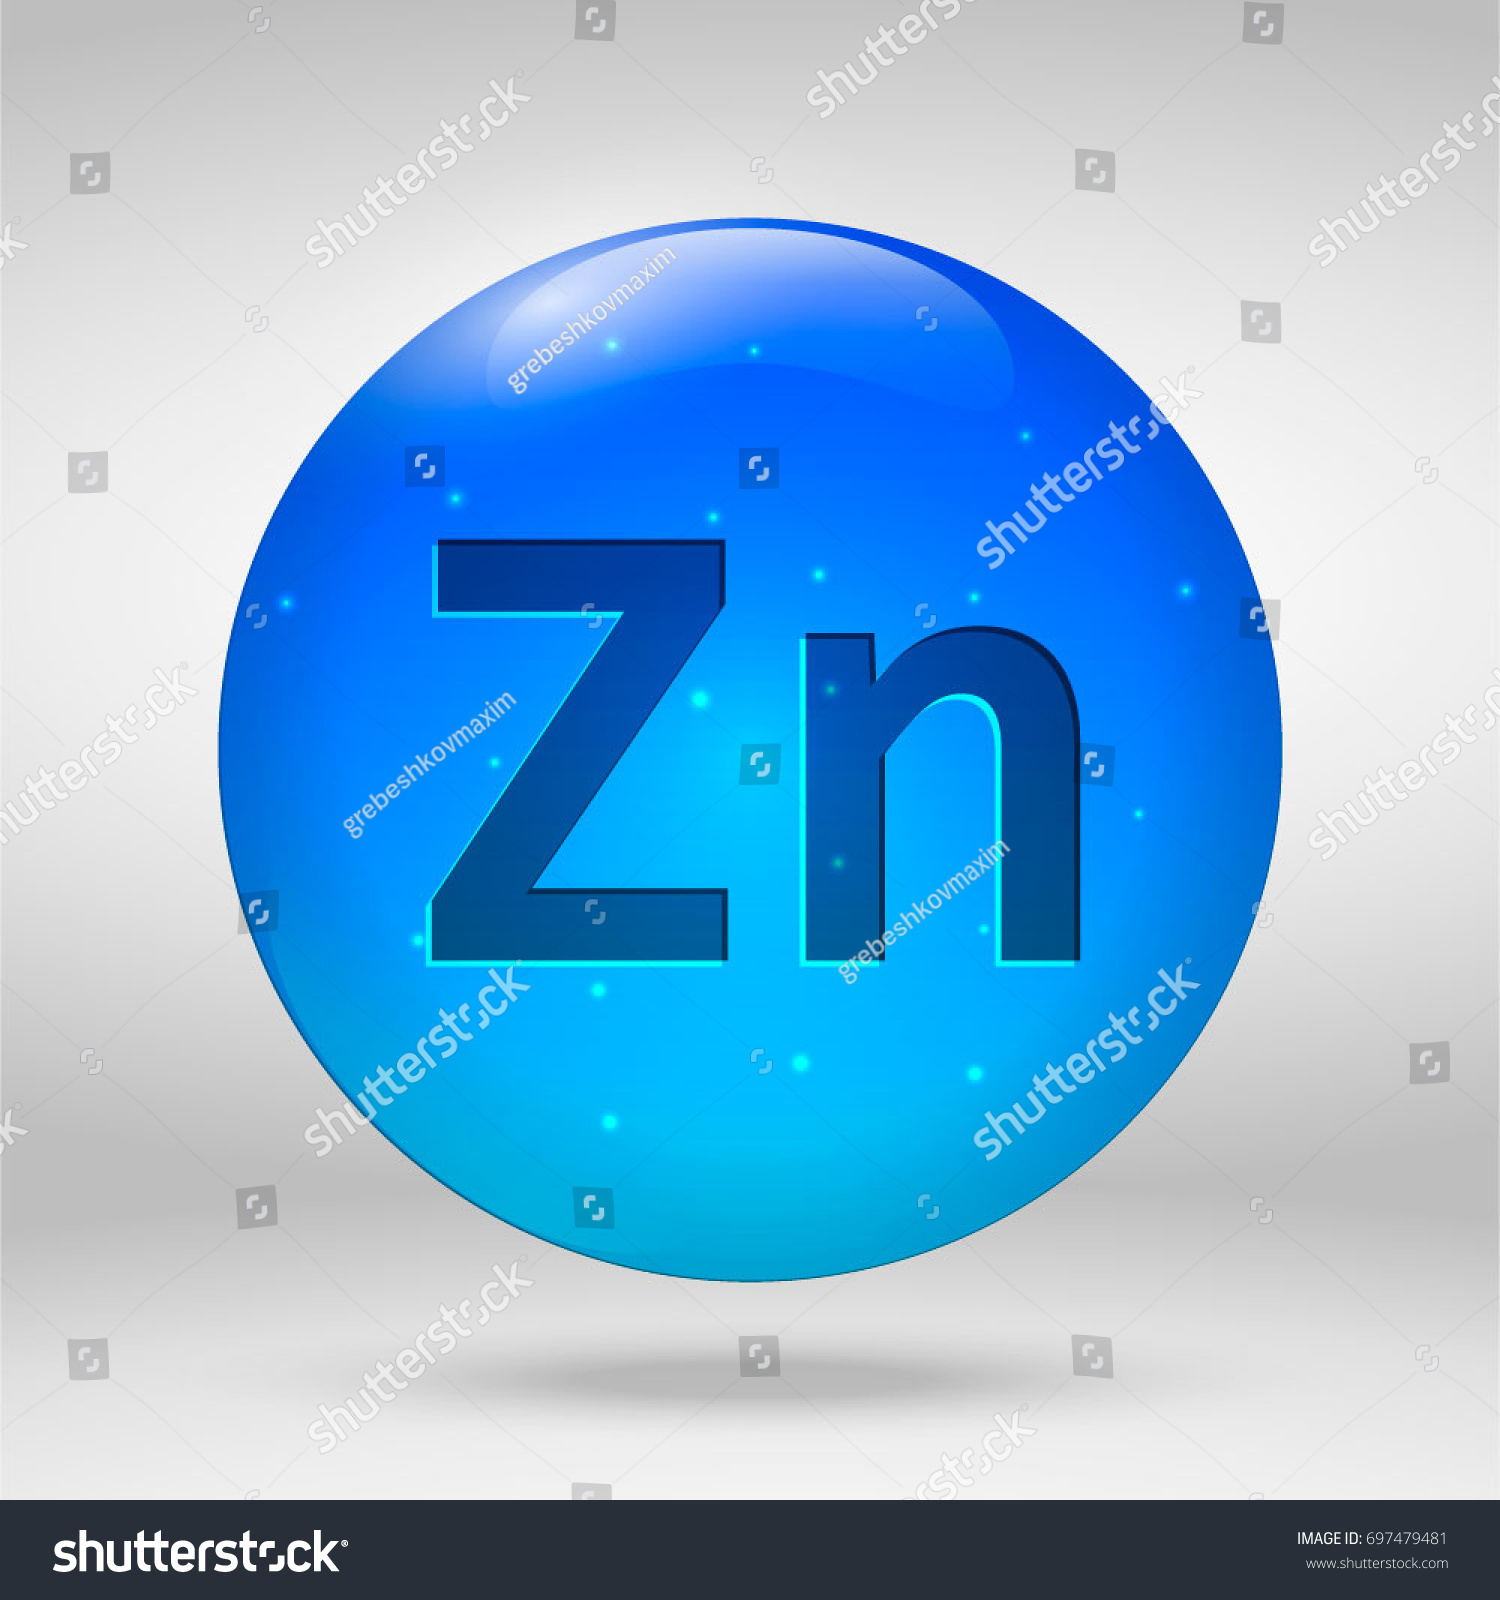 Zinc element periodic table vector 3d stock vector 697479481 zinc element of the periodic table vector 3d glossy drop pill capsule icon gamestrikefo Image collections